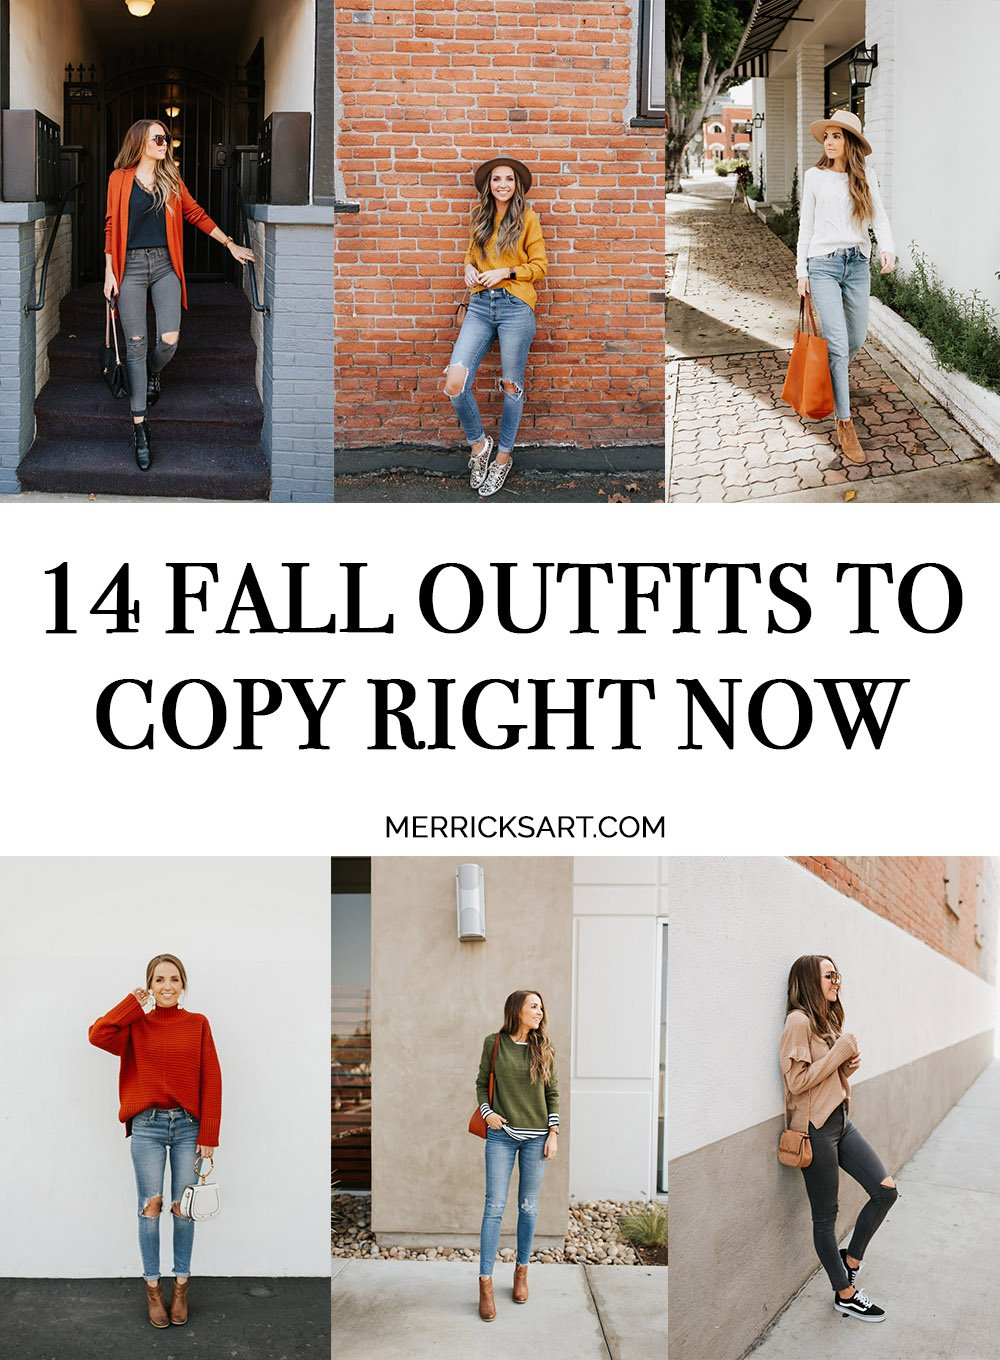 14 fall outfit ideas